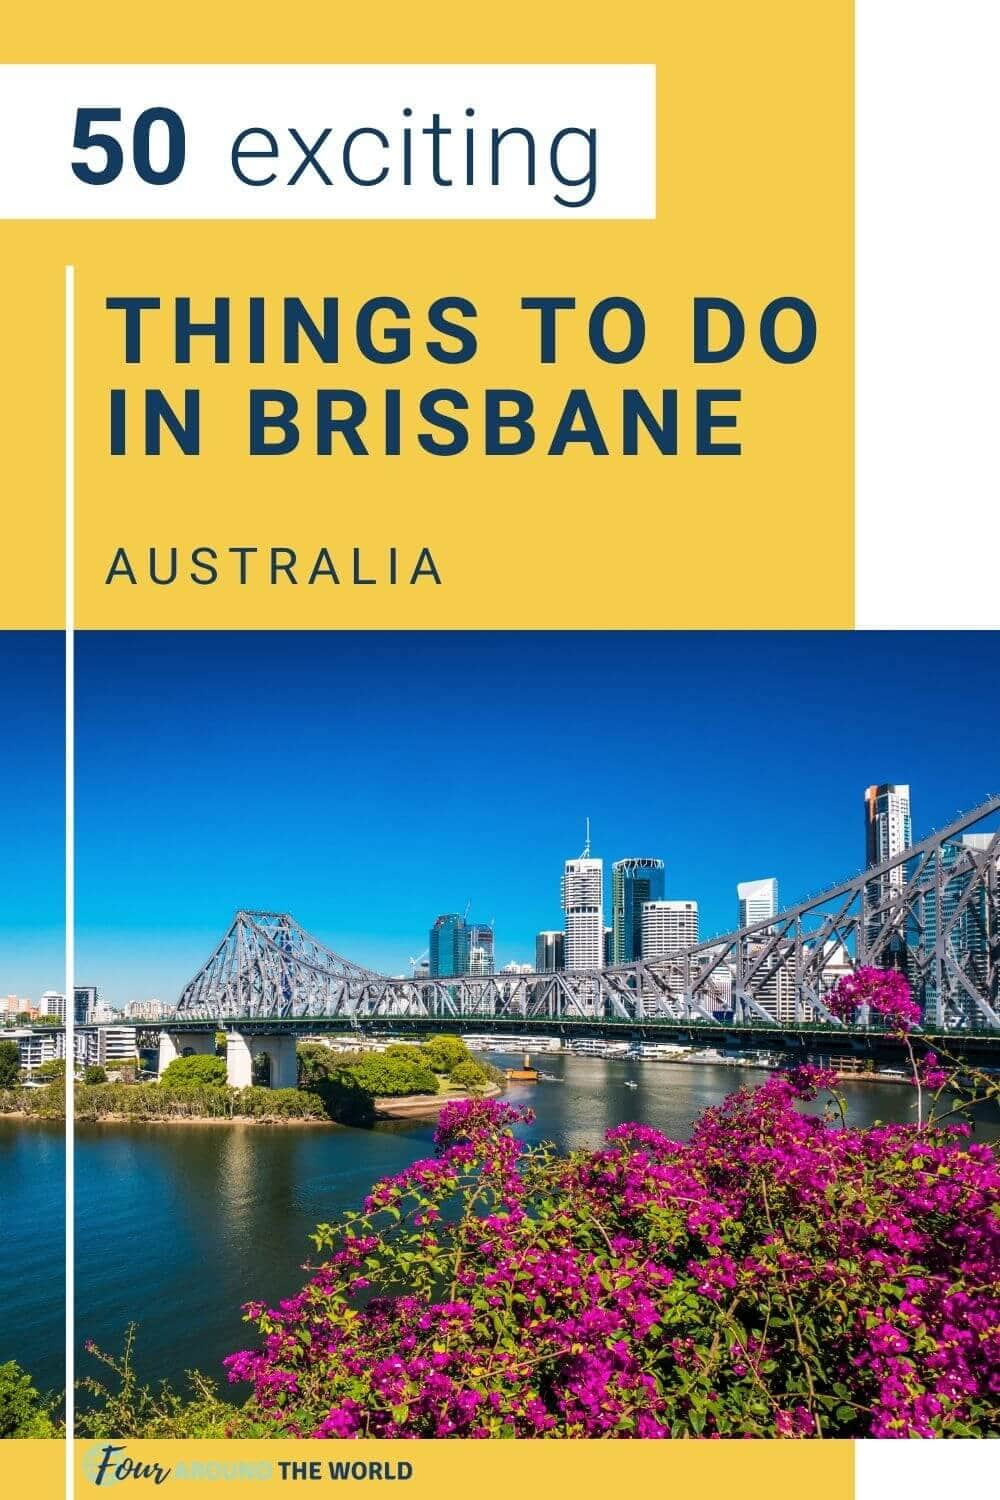 50 best things to do in Brisbane